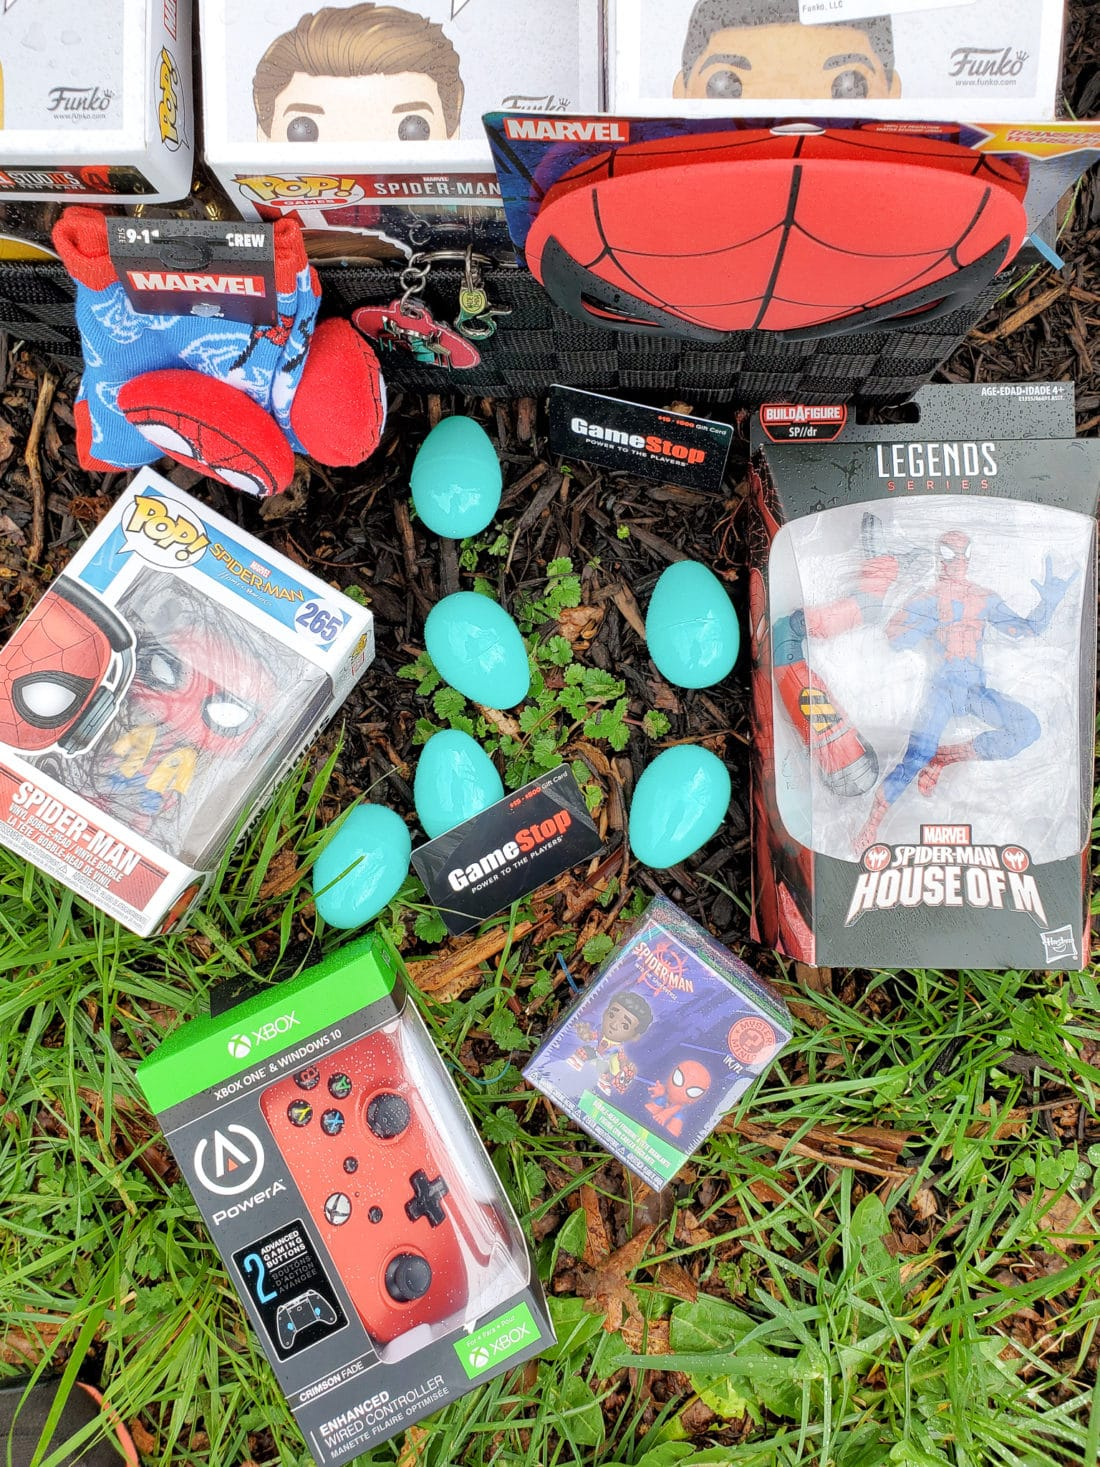 Spider-Man Easter Basket Overhead. Build your very own Spider-Man themed Easter Basket with a little help from your One-Stop-Shop GameStop. Gamestop has everything you need to build the ultimate Easter Basket for your teenager.